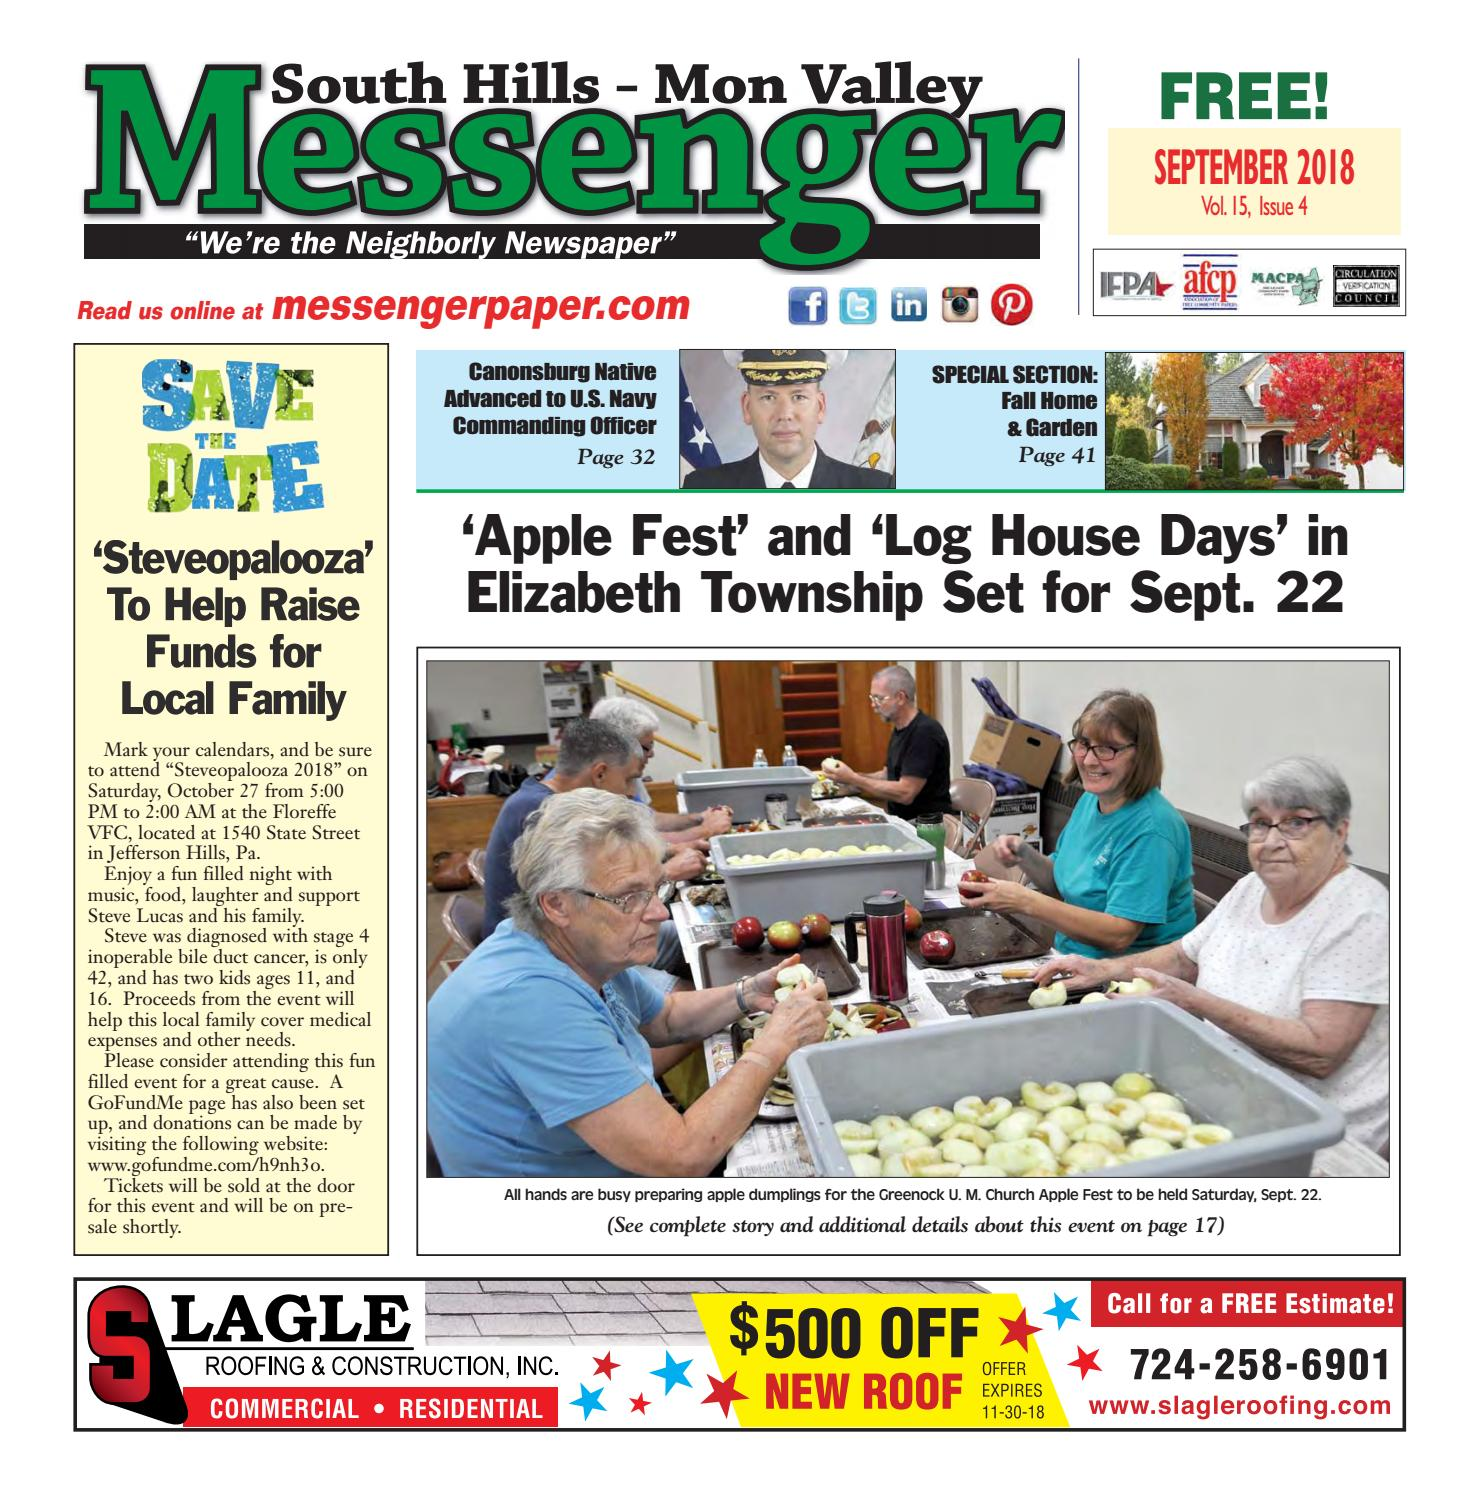 South Hills Mon Valley Messenger September 2018 by South